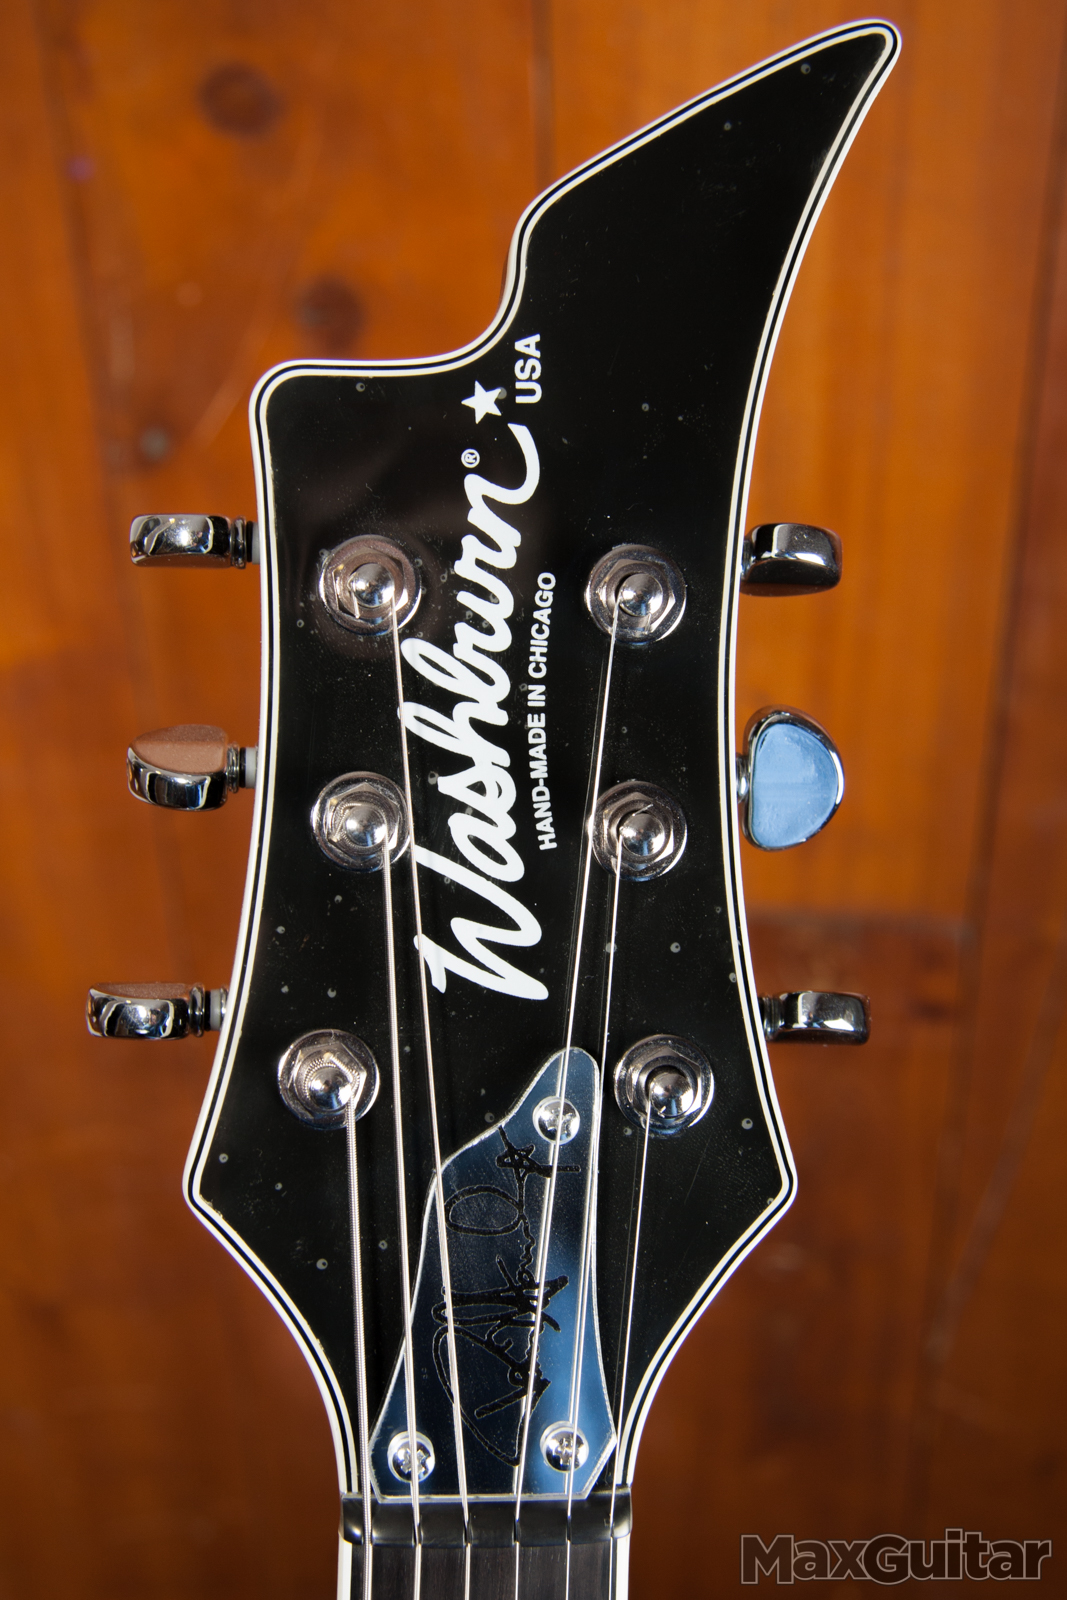 Washburn PS2000 2009 Other Guitar For Sale Max Guitar